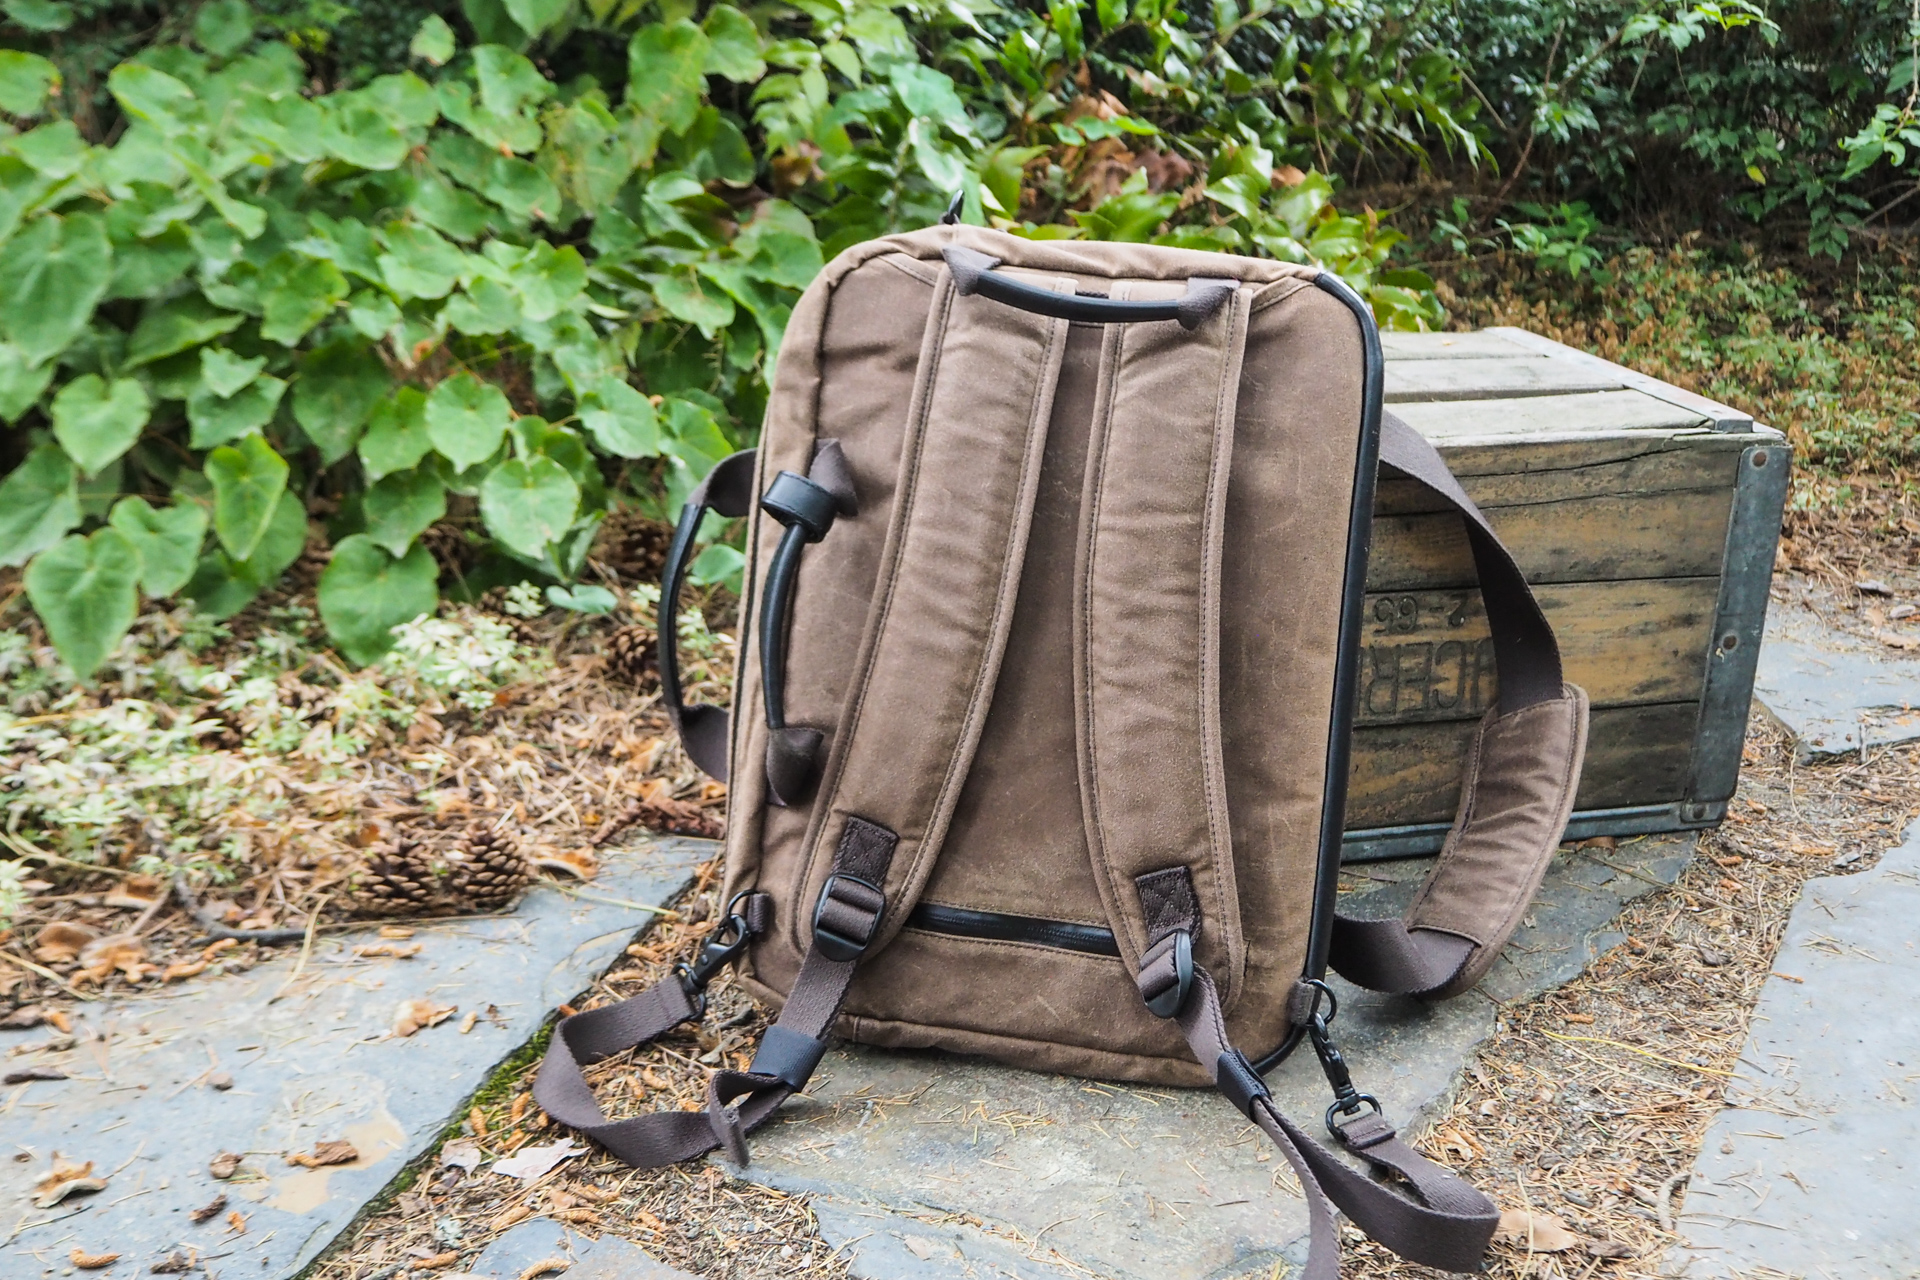 Waxed canvas bags from Waterfield, Manhattan Portage, Saddleback and more – TechCrunch 5